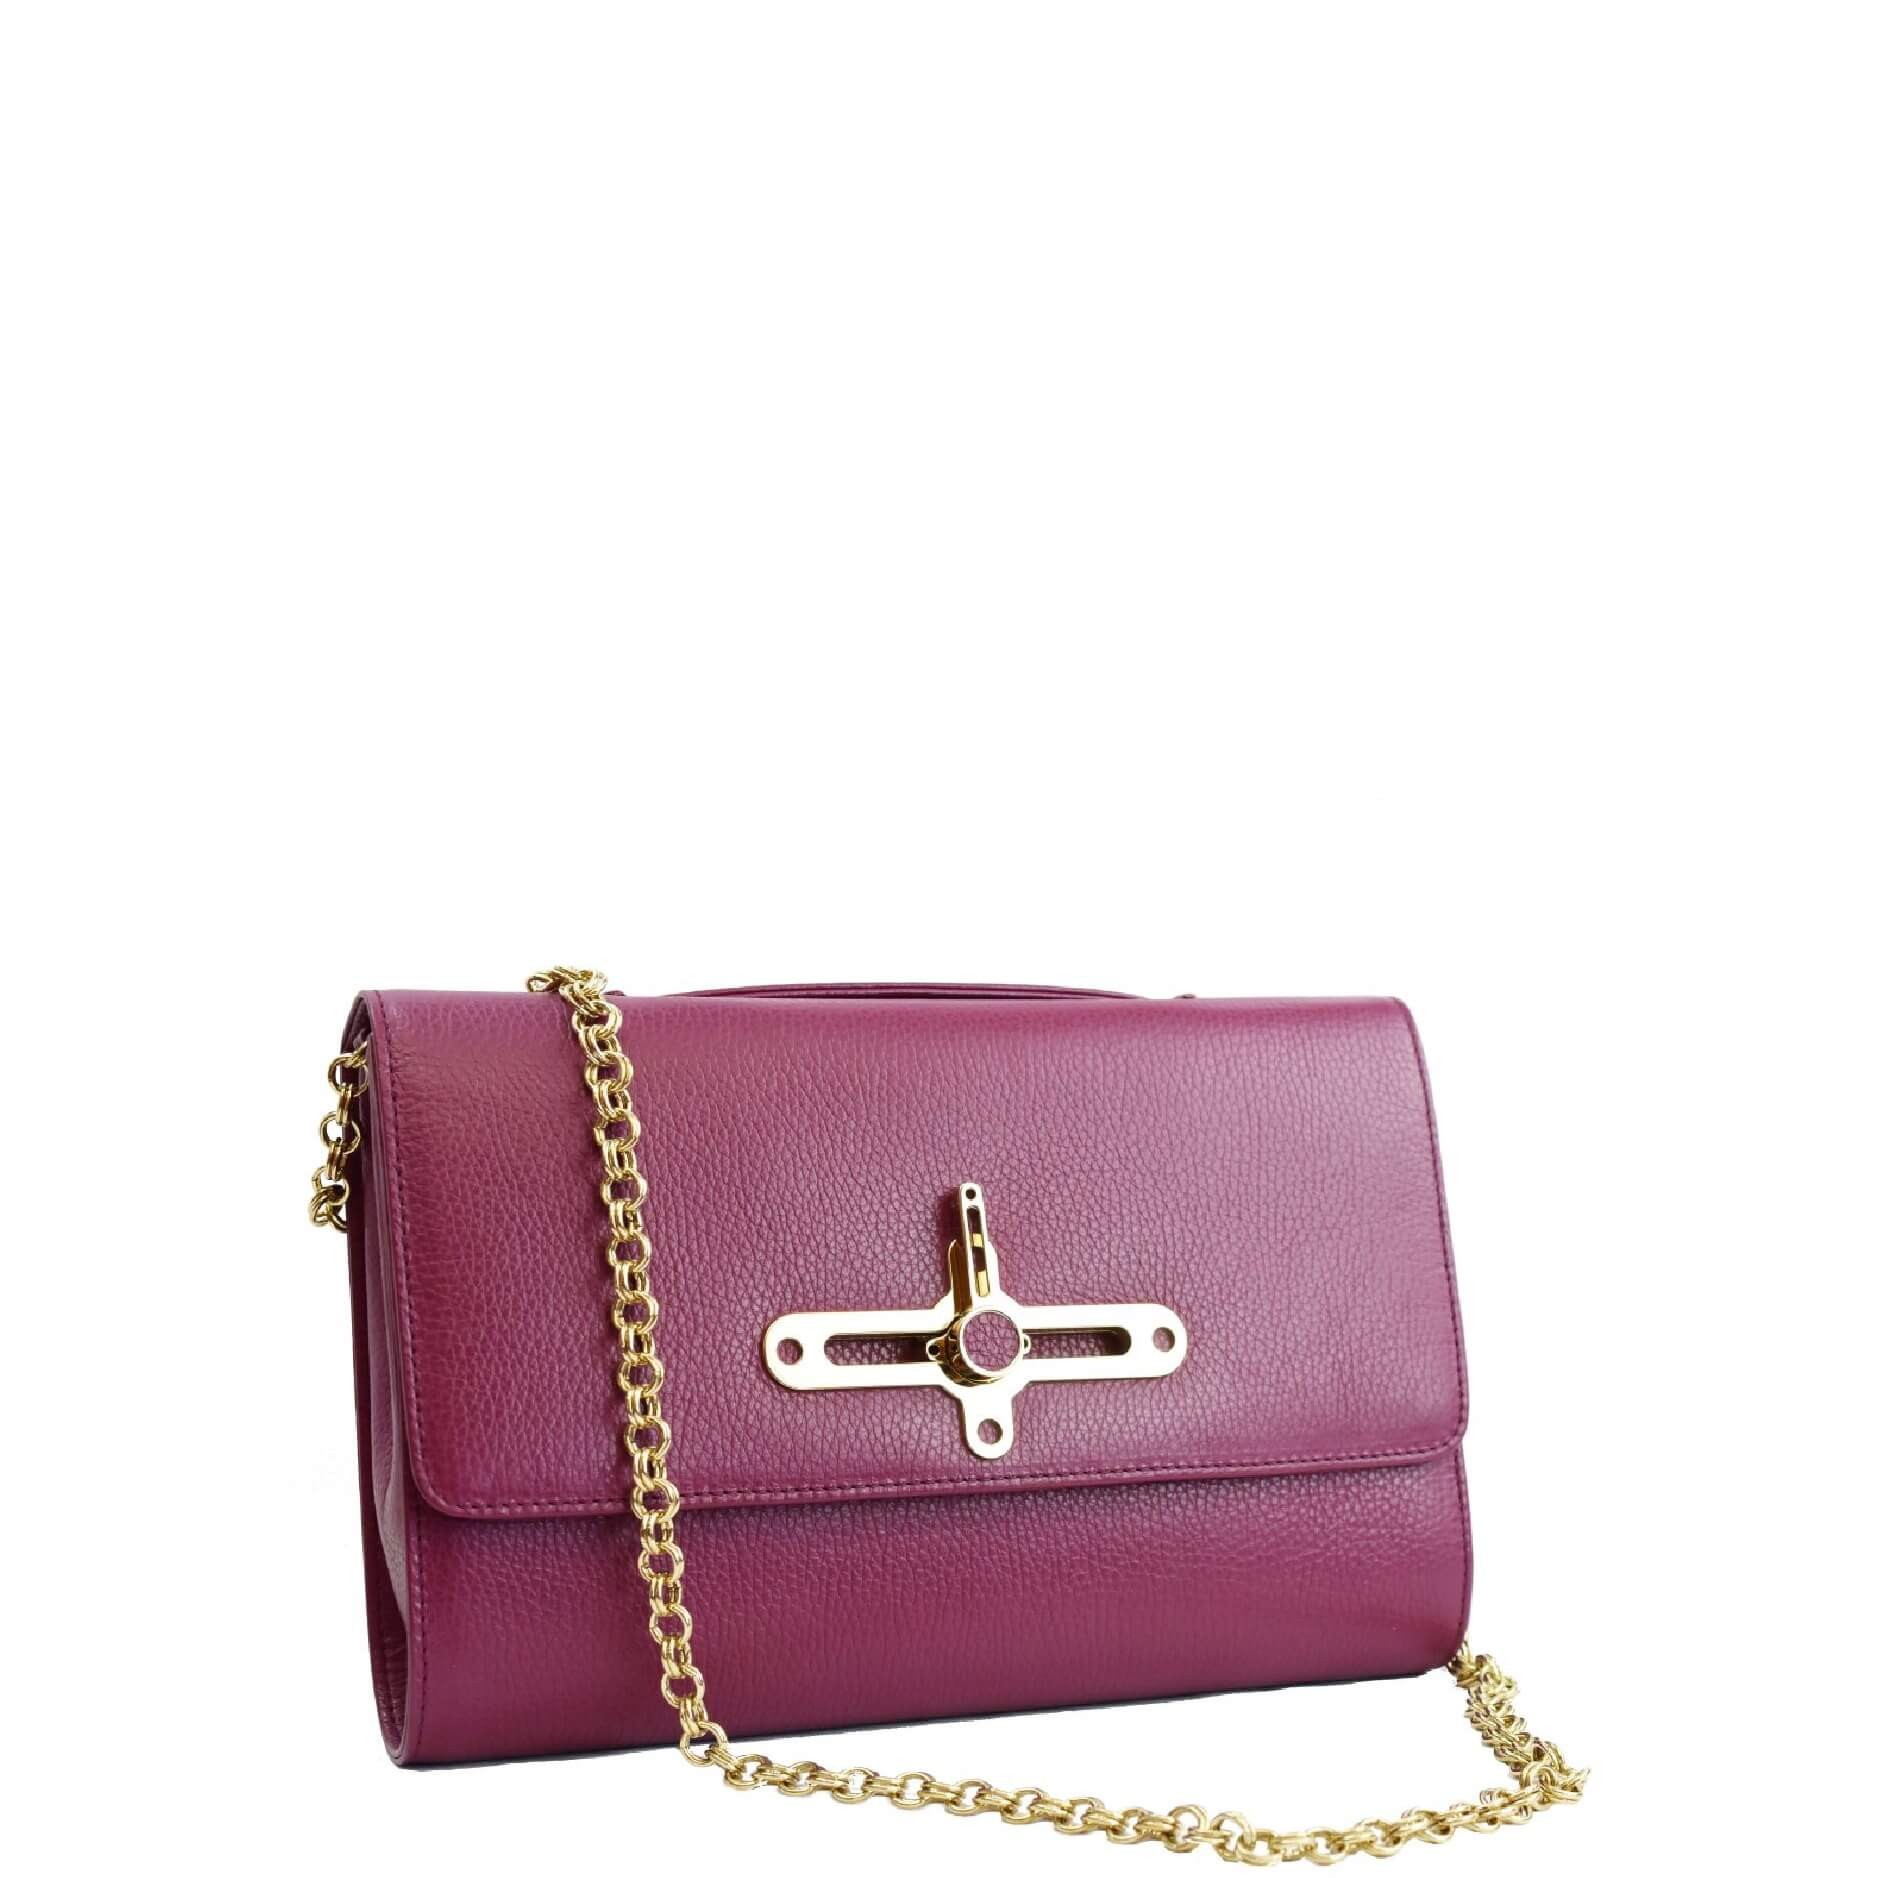 Clutch handbag. New York L Plum